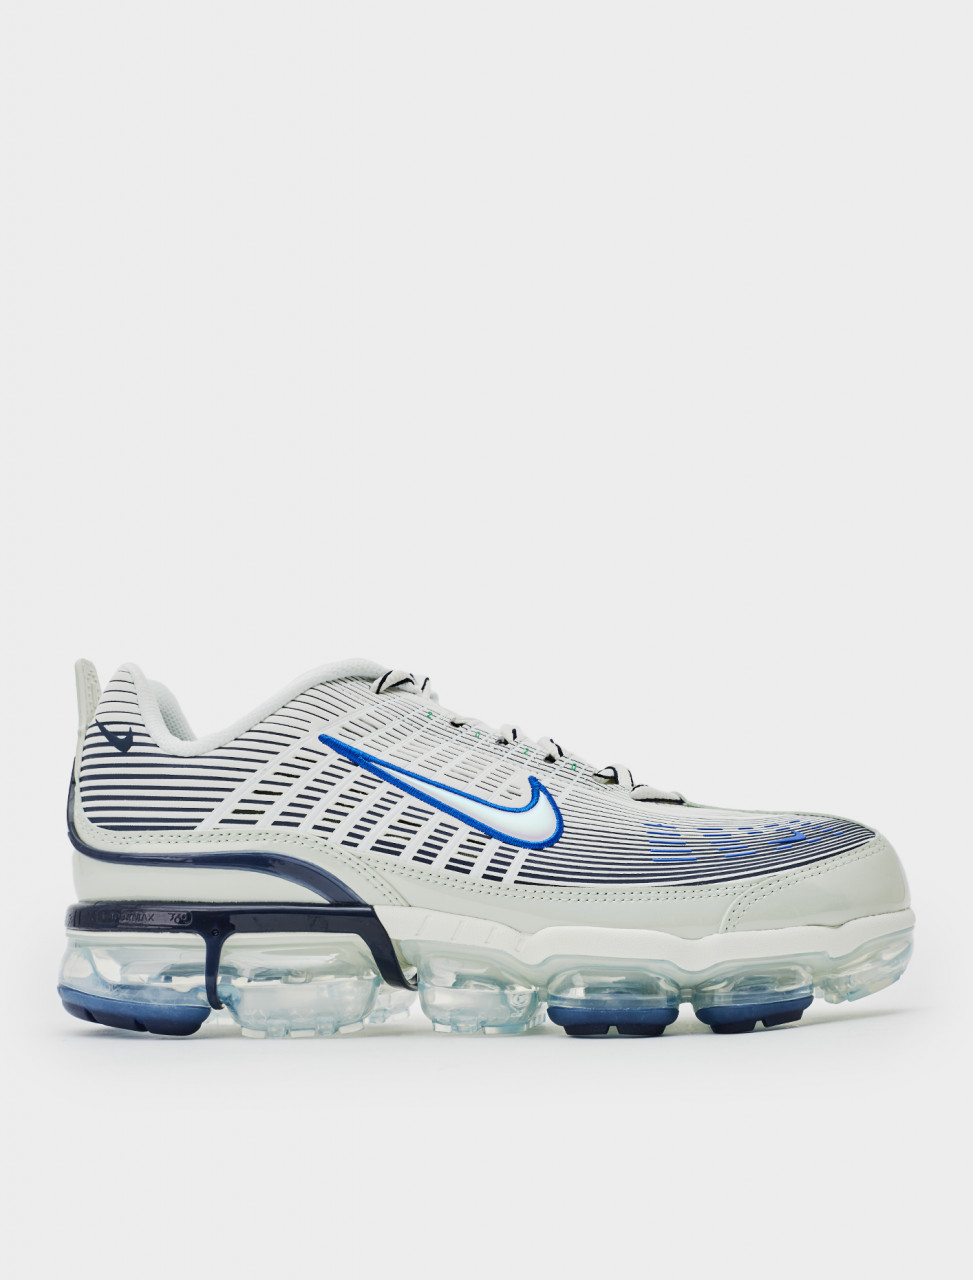 Nike Air Vapormax 360 Sneaker in Spruce Aura and Racer Blue-Pistachio Frost